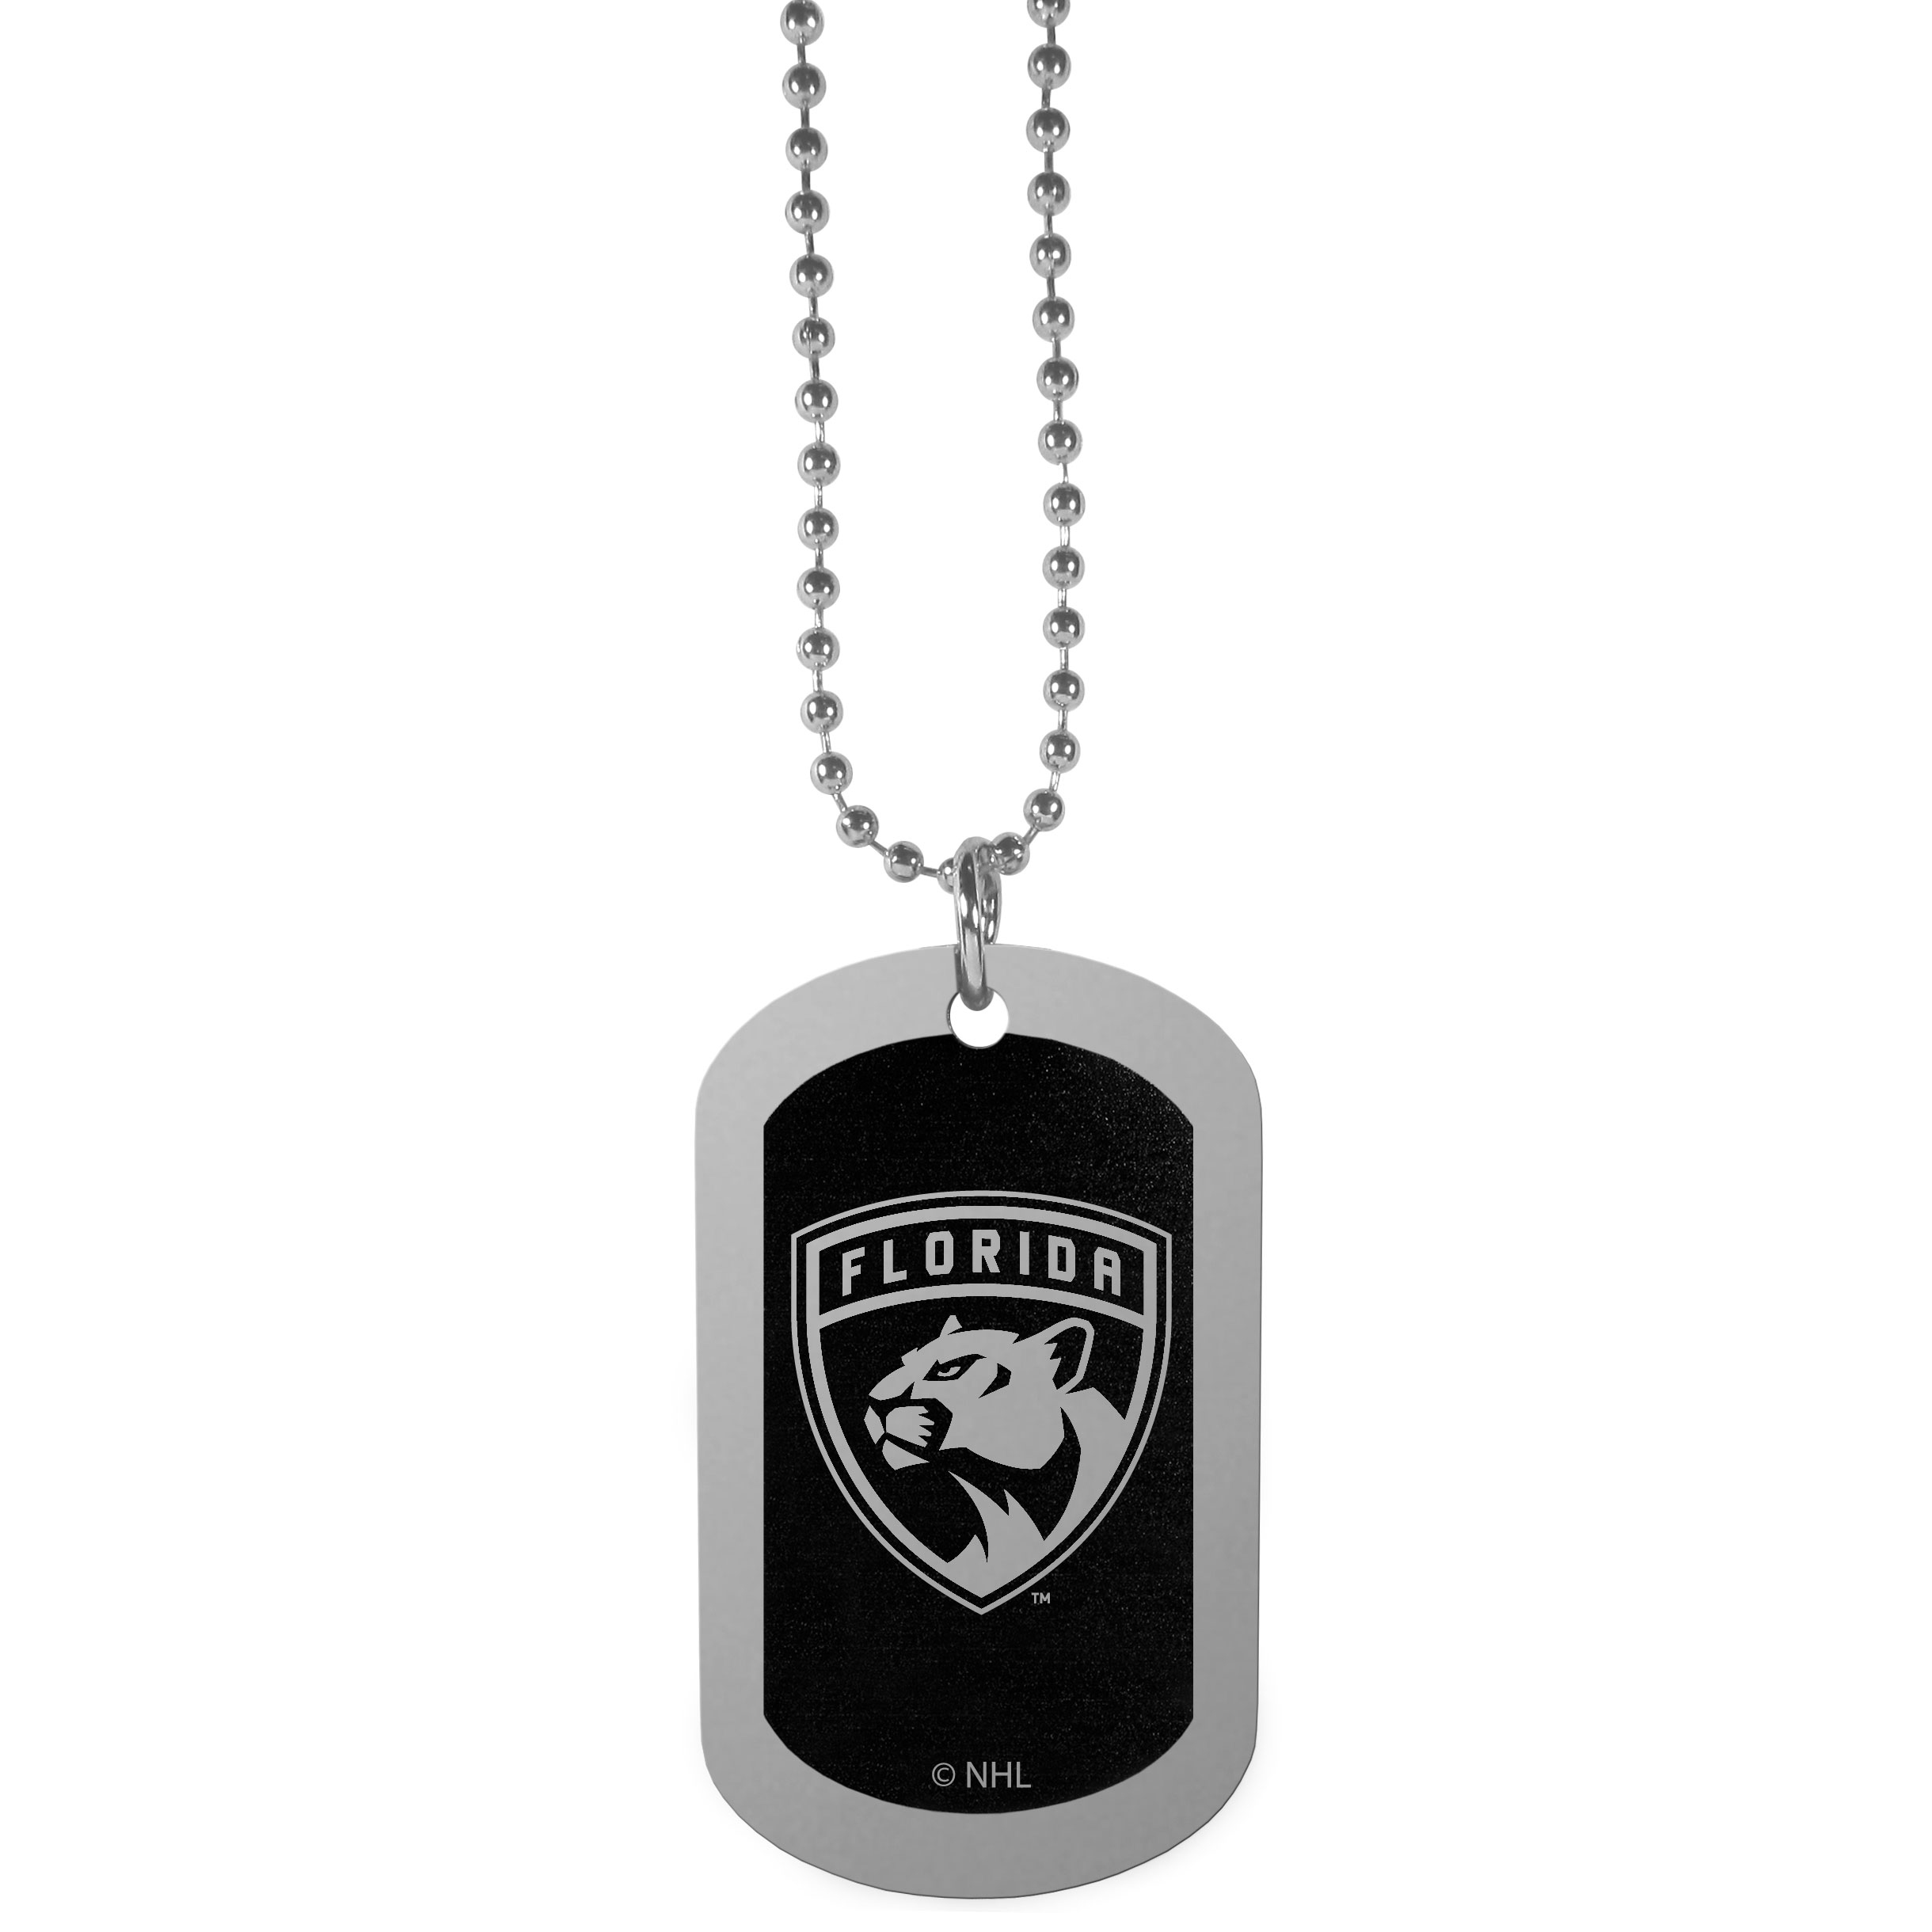 Florida Panthers® Chrome Tag Necklace - Dog tag necklaces are a fashion statement that is here to stay. The sporty version of the classic tag features a black printed over a high polish tag to create a bold and sporty look. The tag comes on a 26 inch ball chain with a ball and joint clasp. Any Florida Panthers® would be proud to wear this attractive fashion accessory.